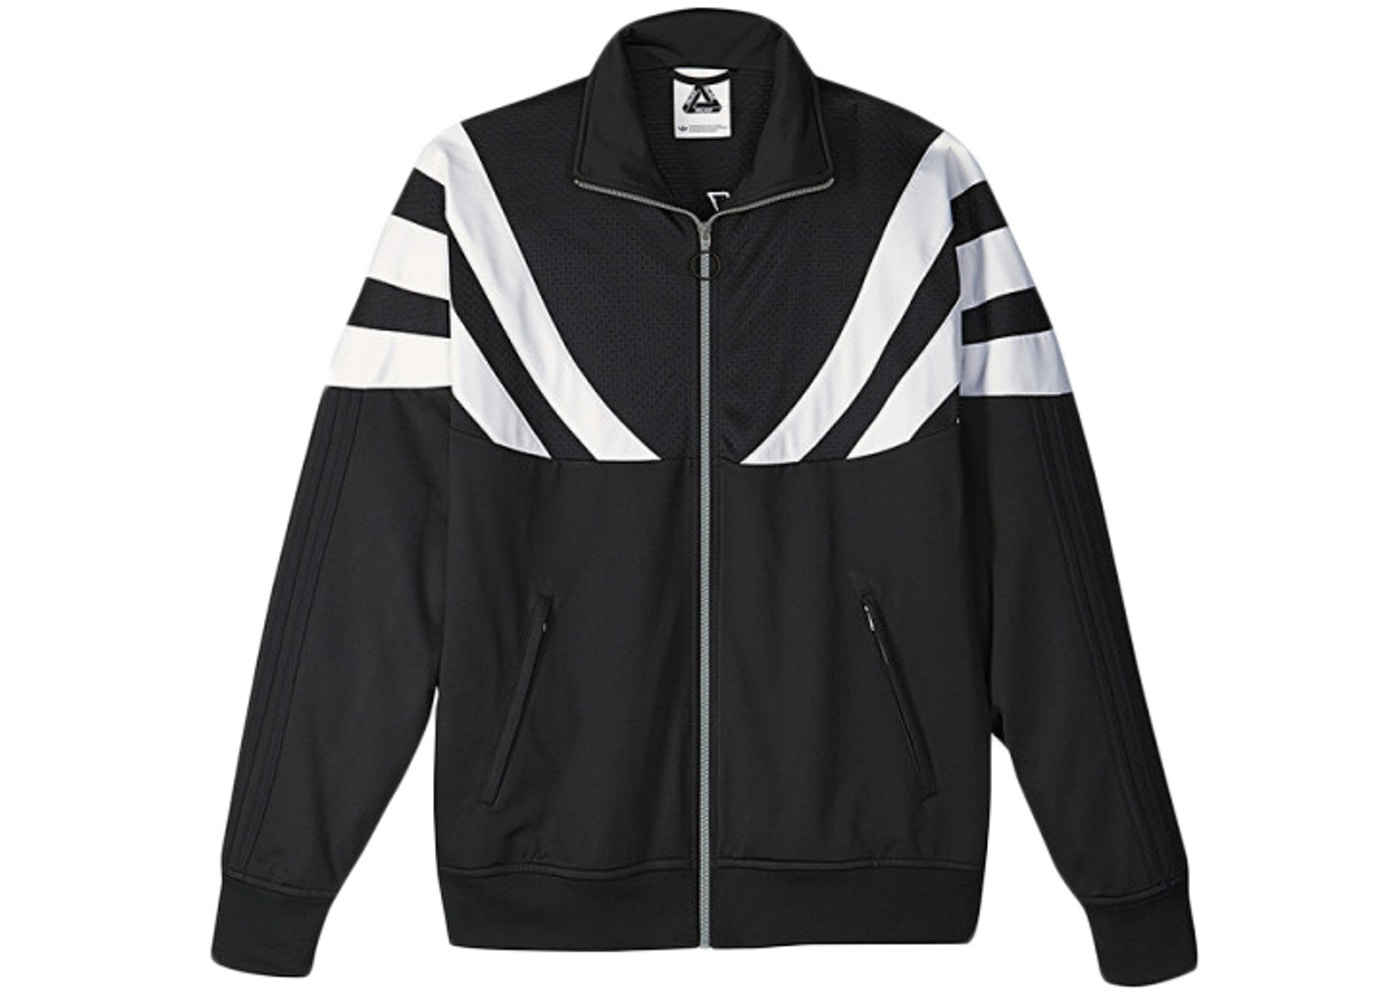 44fe44487 Palace adidas Track Top 2 Black/White - SS15